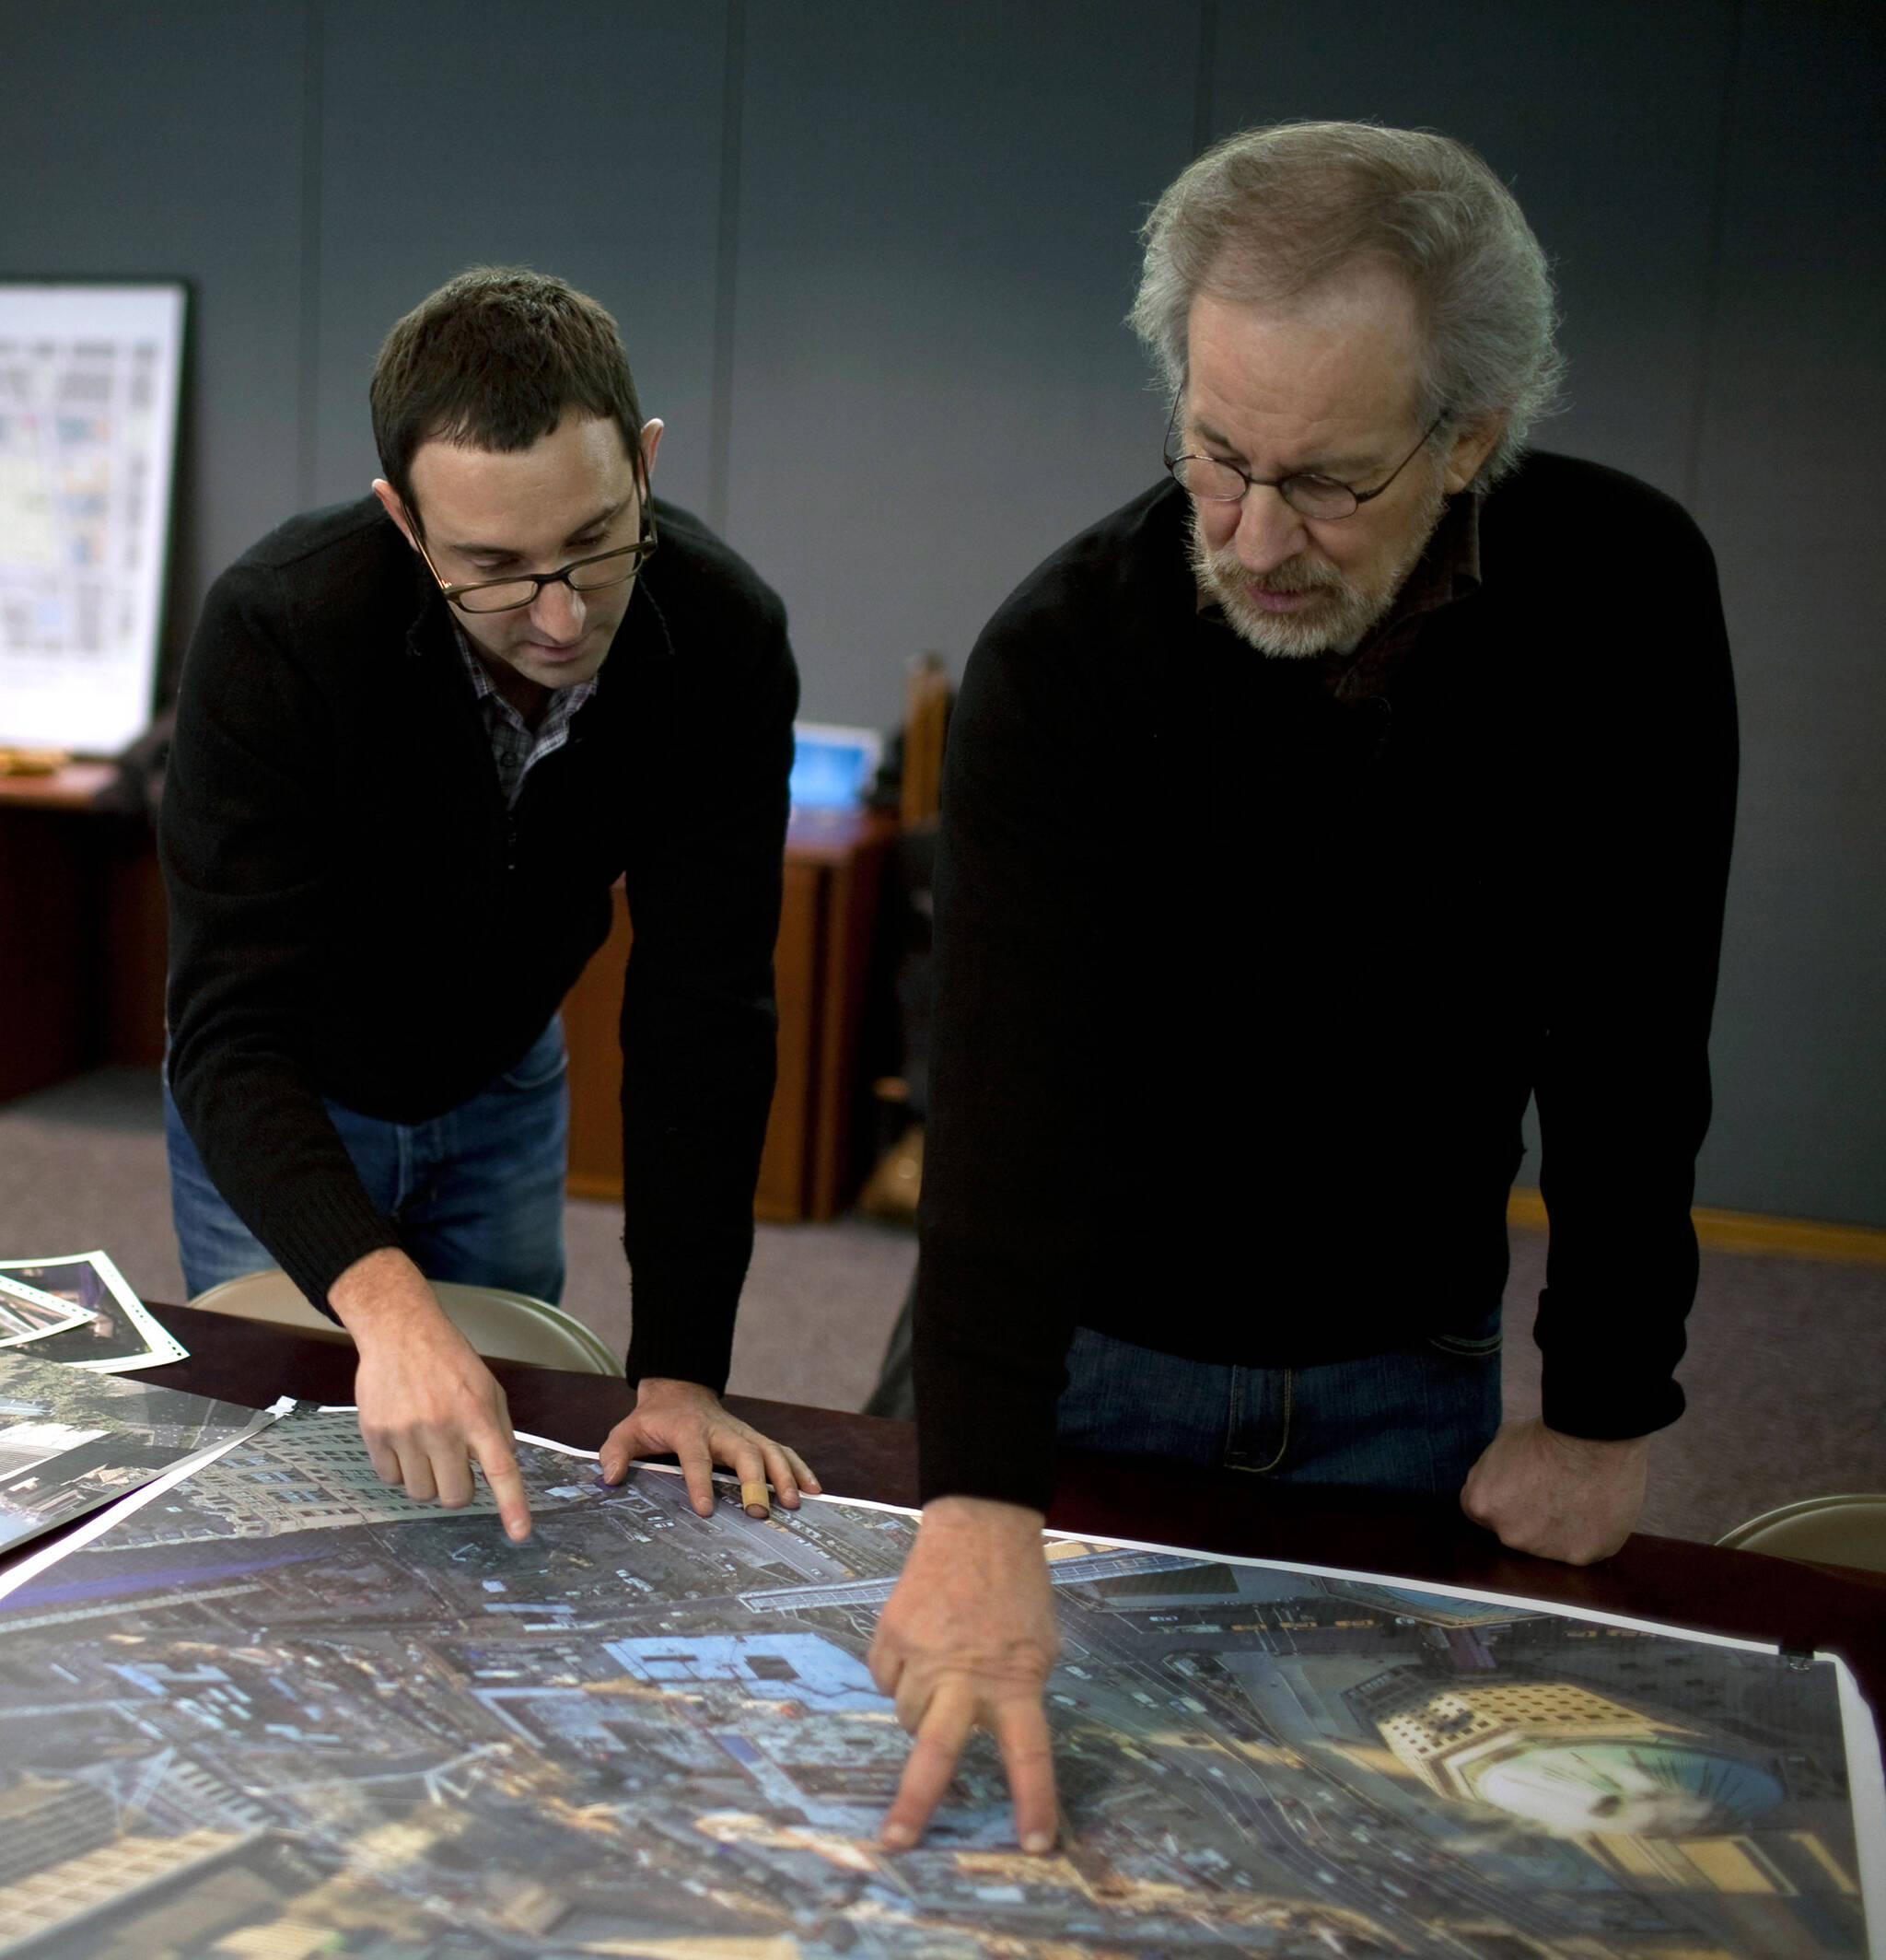 Danny Forster and Steven Spielberg reviewing takes for the Rising: Rebuilding Ground Zero documentary Co-produced by Danny Forster and Steven Spielberg about the rebuilding of the World Trade Center site in the wake of 9/11.